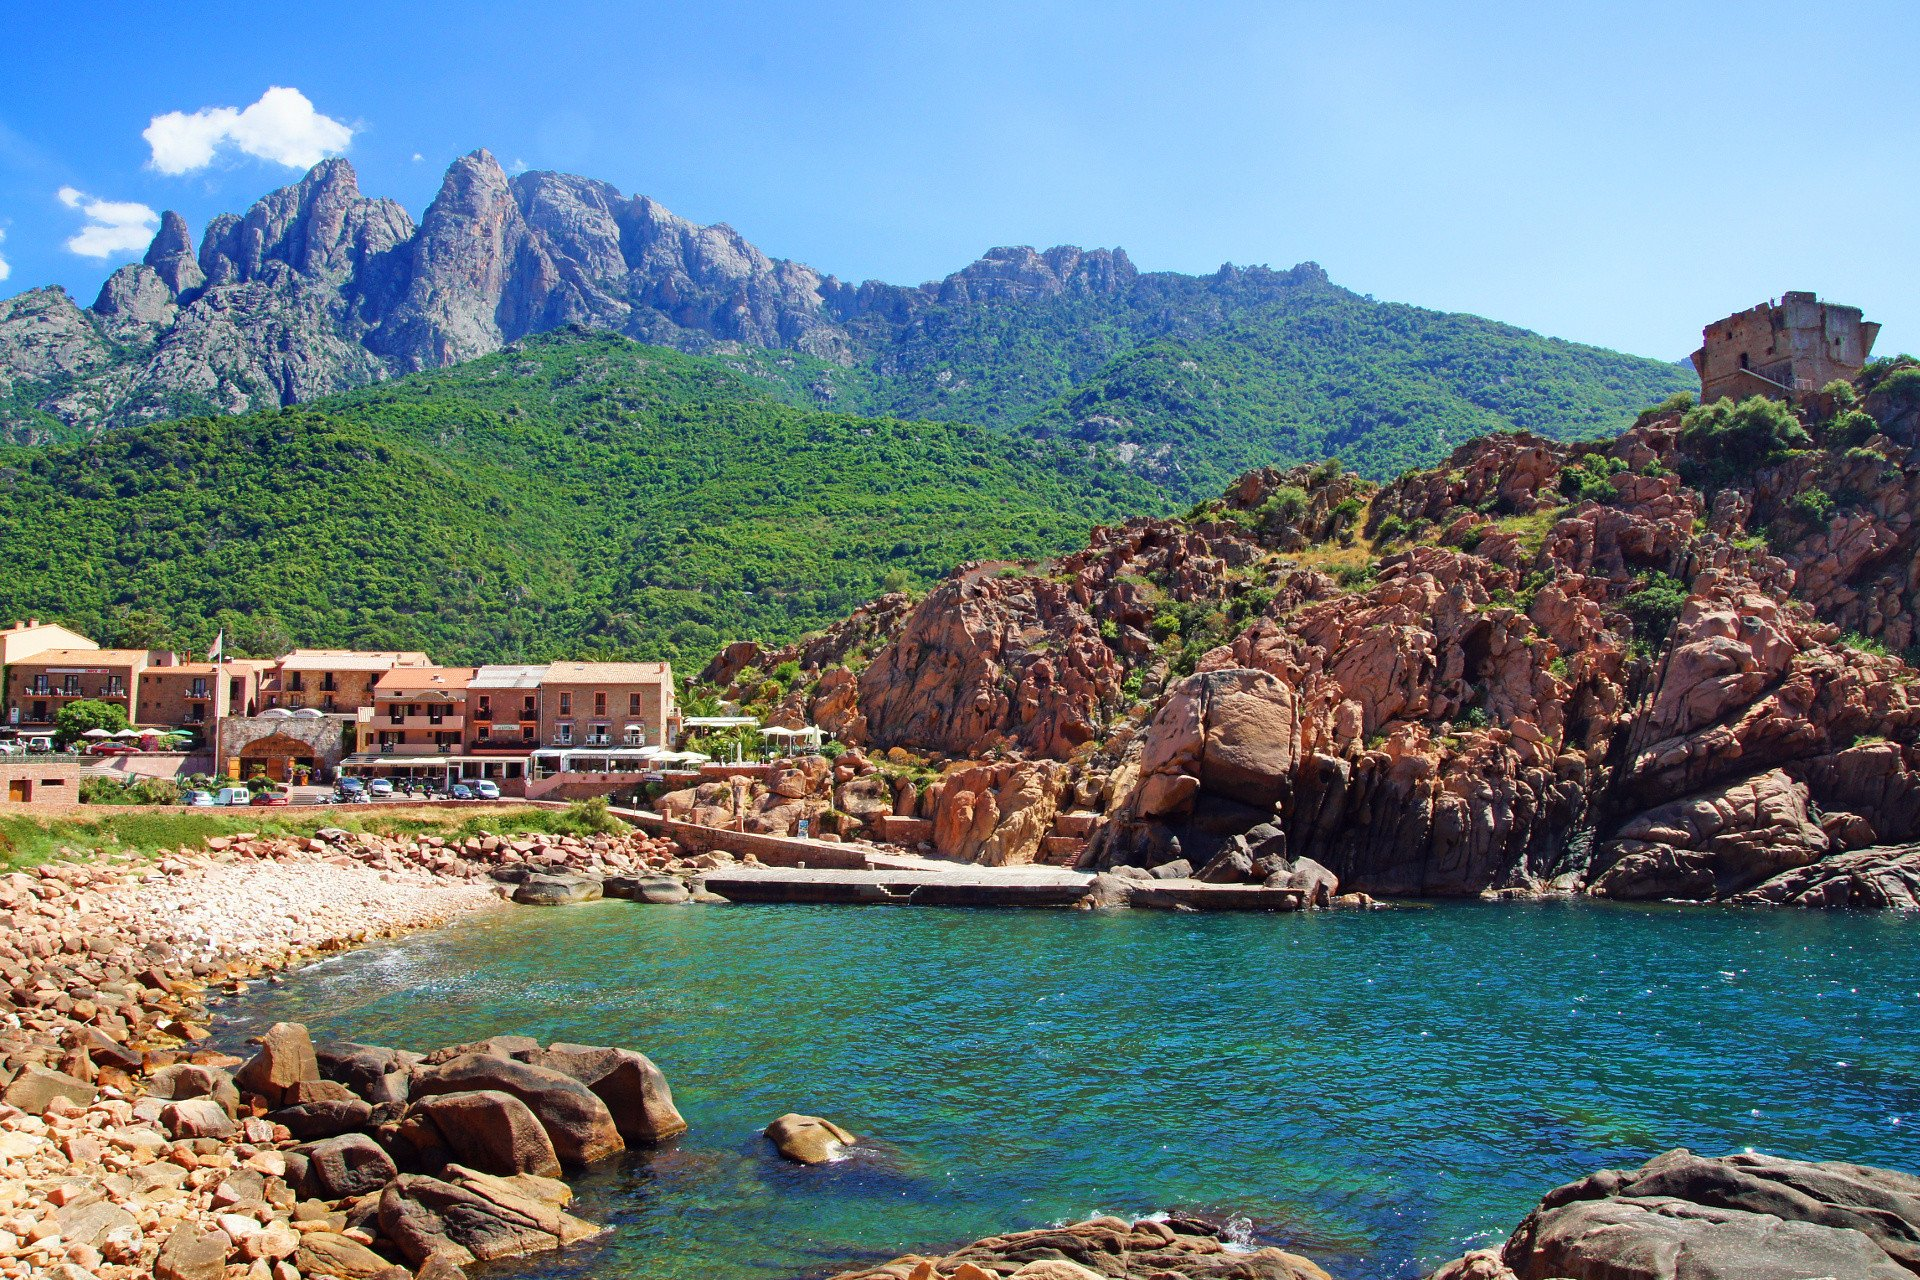 Corsican seaside village surrounded by rocky landscape